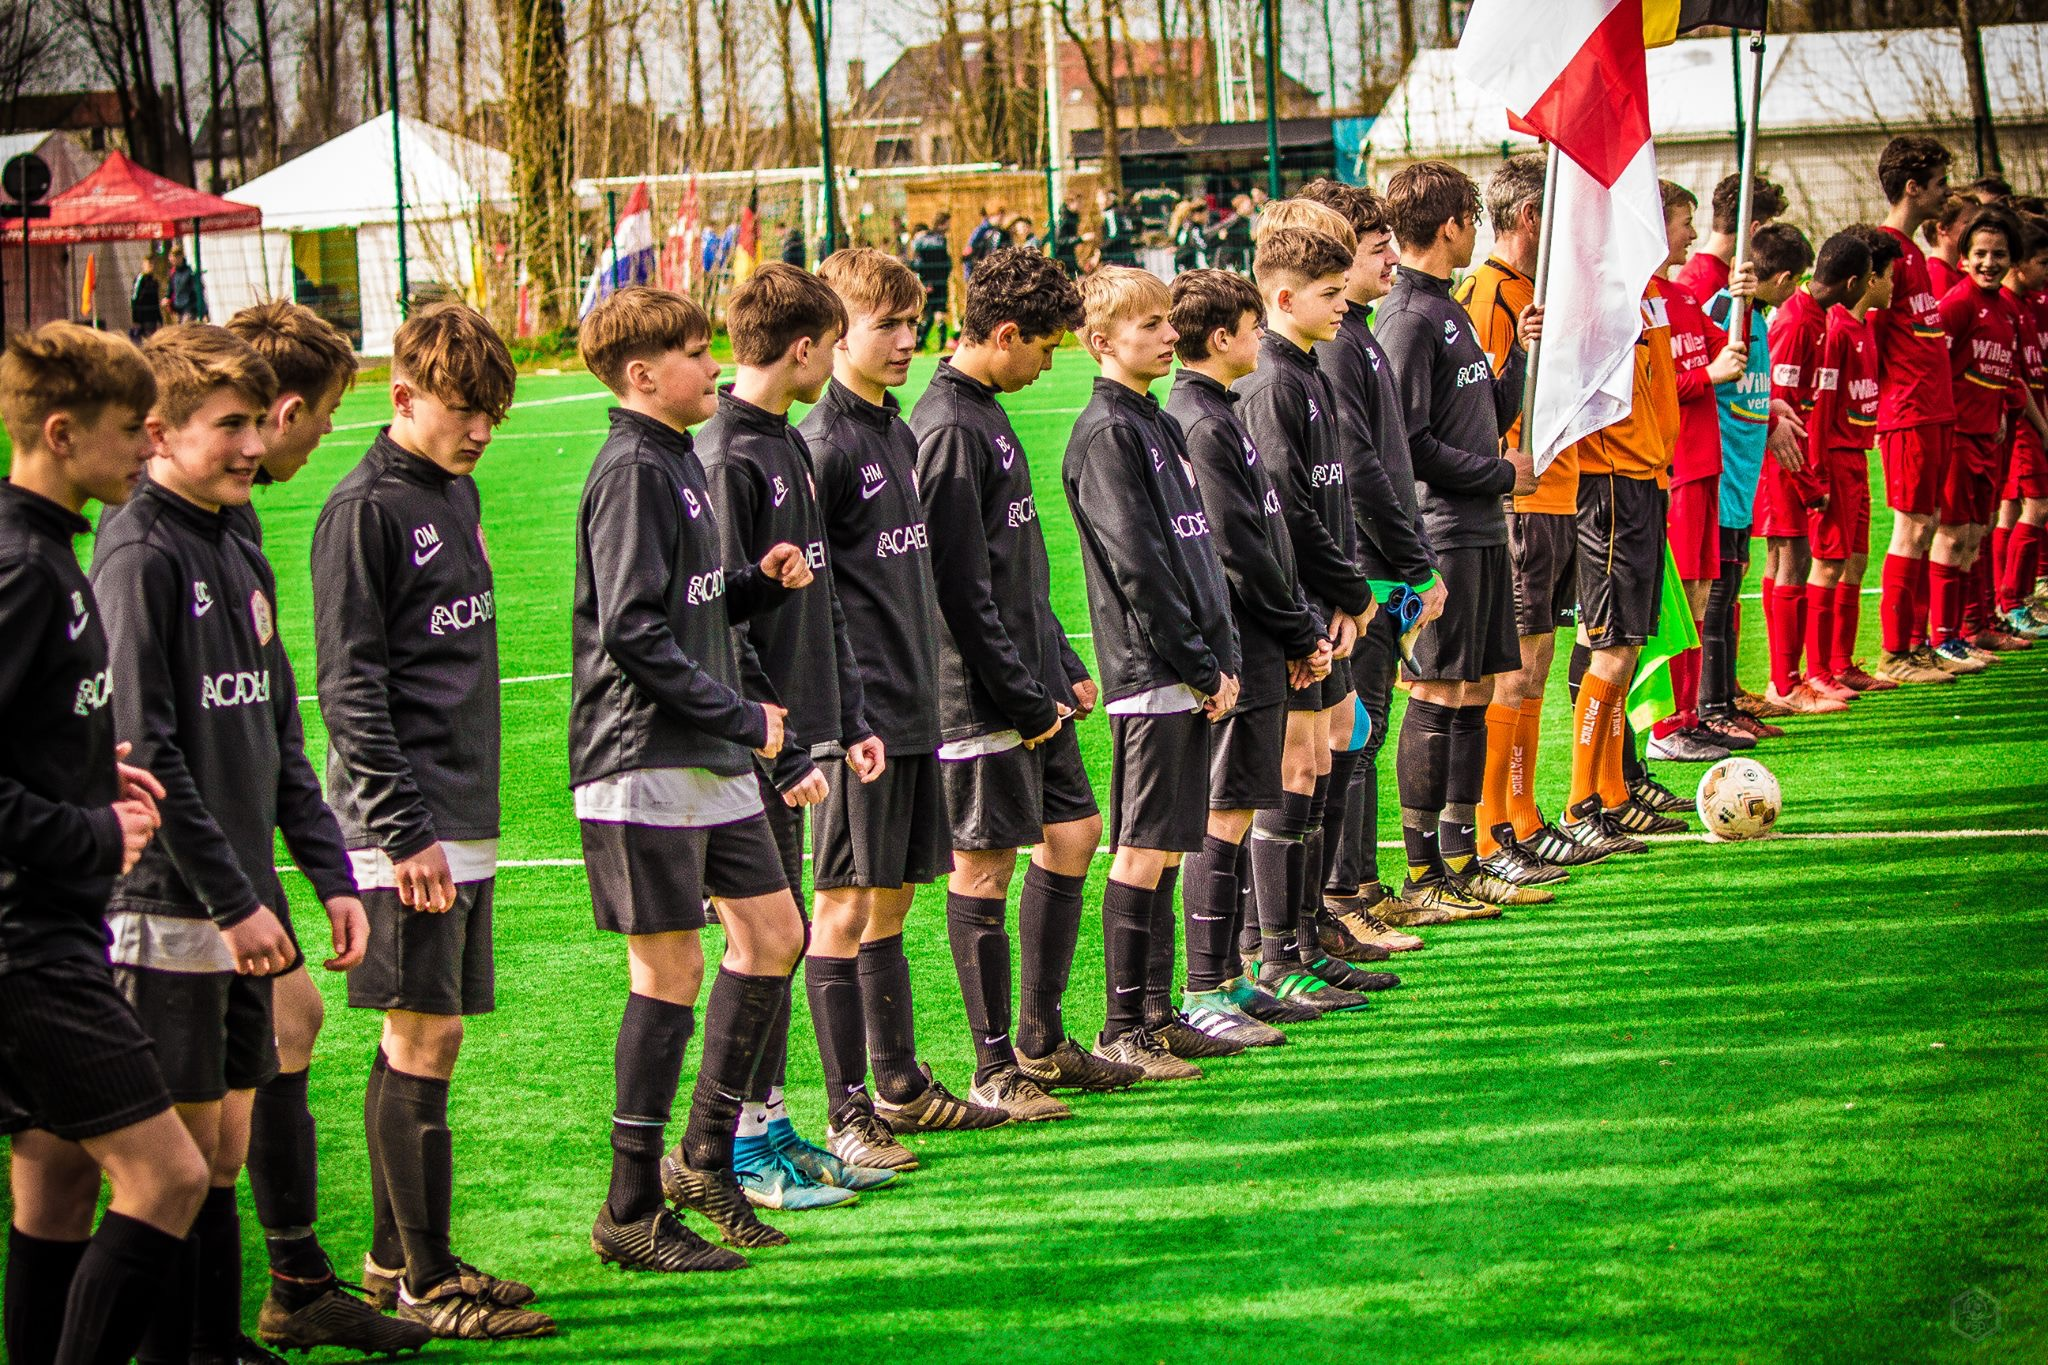 INTERNATIONAL TOURS - PARTICIPATION IN THE BIGGEST AND BEST INTERNATIONAL TOURAMENTSSERENI CUP | DUTCH SOCCER YOUTH CUP | HAGELAND CUP